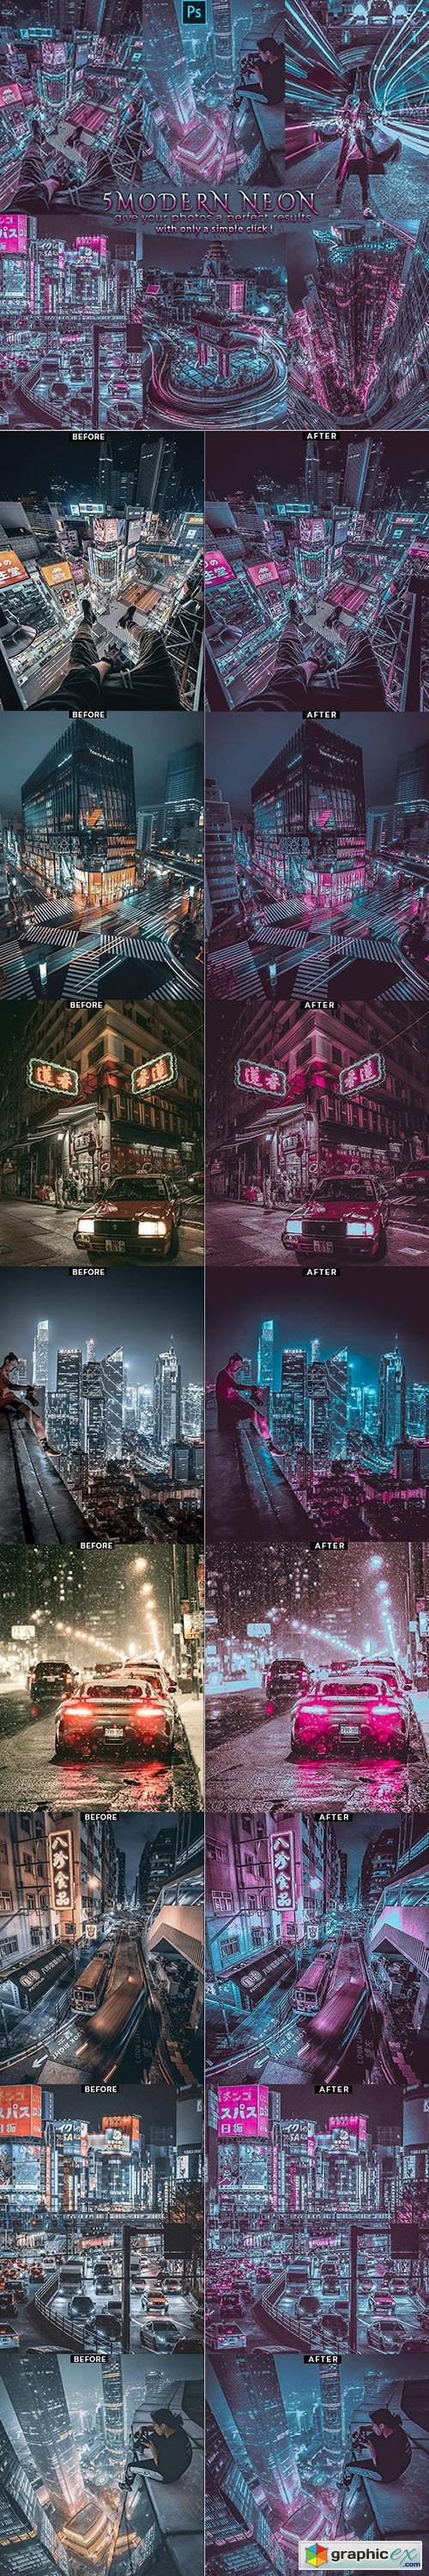 Modern Neon - Blogger Insta Photoshop Actions